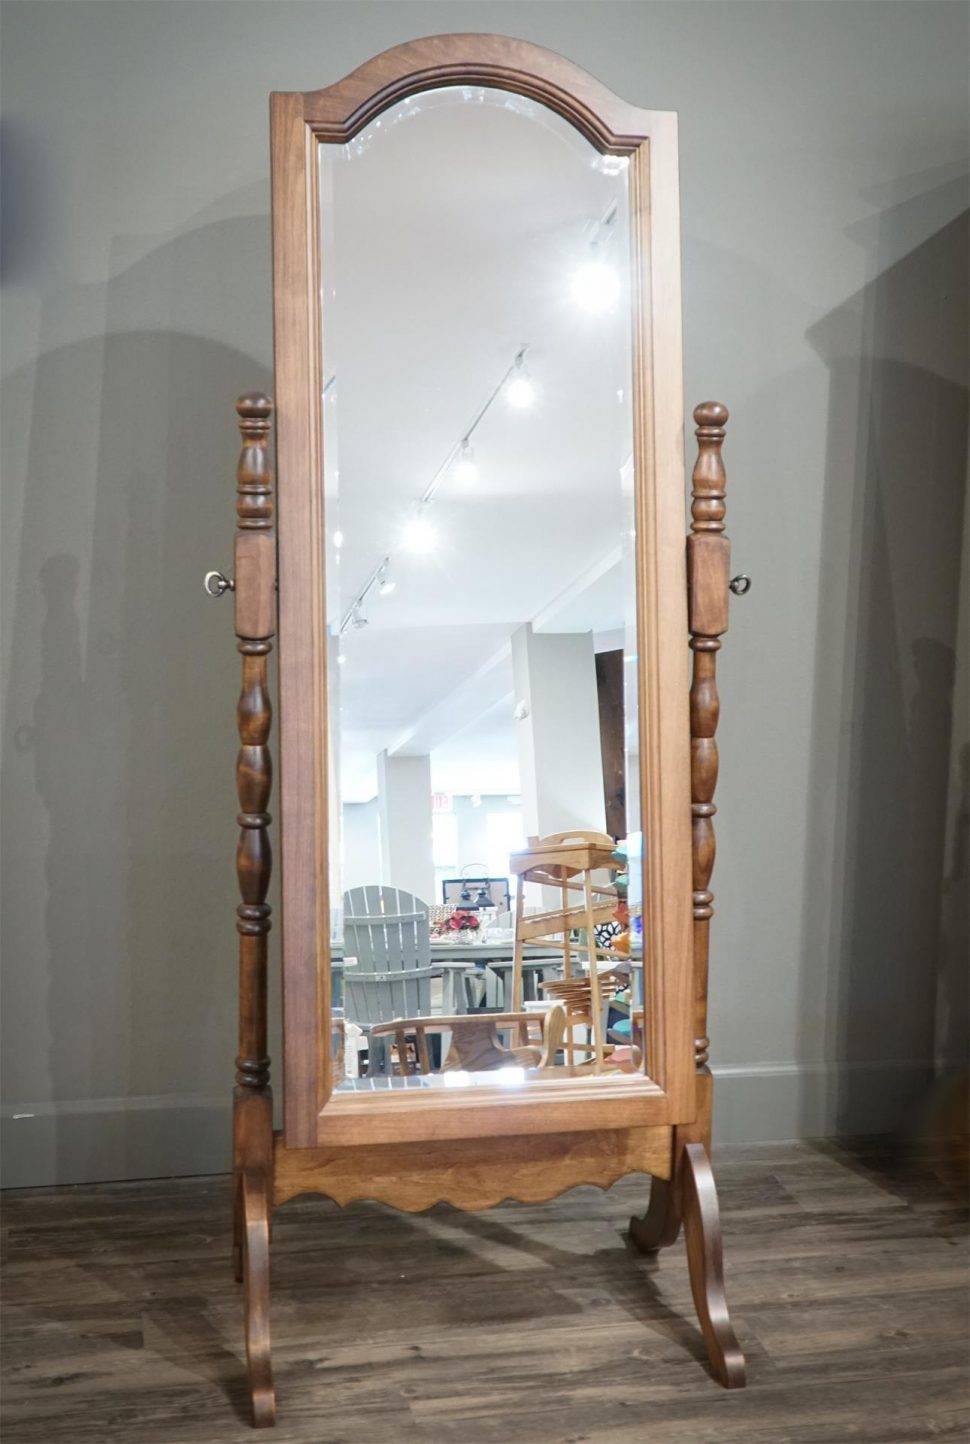 Bedroom Furniture : Free Standing Mirror Wood Framed Mirrors inside Full Length Large Free Standing Mirrors (Image 2 of 15)